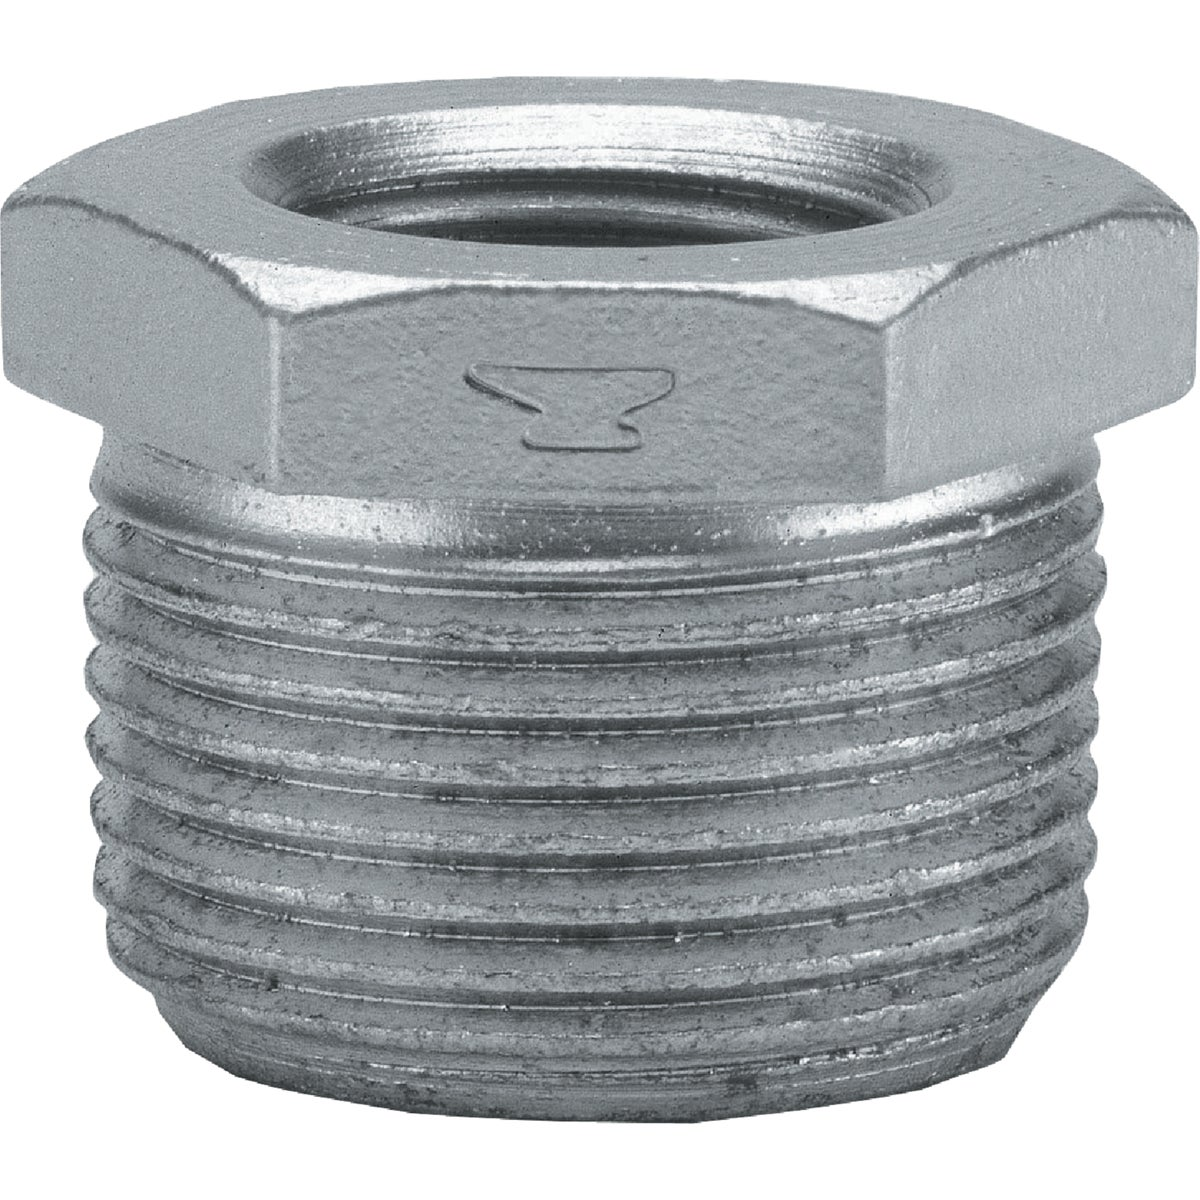 3/4X1/2 GALV BUSHING - 8700130704 by Anvil International